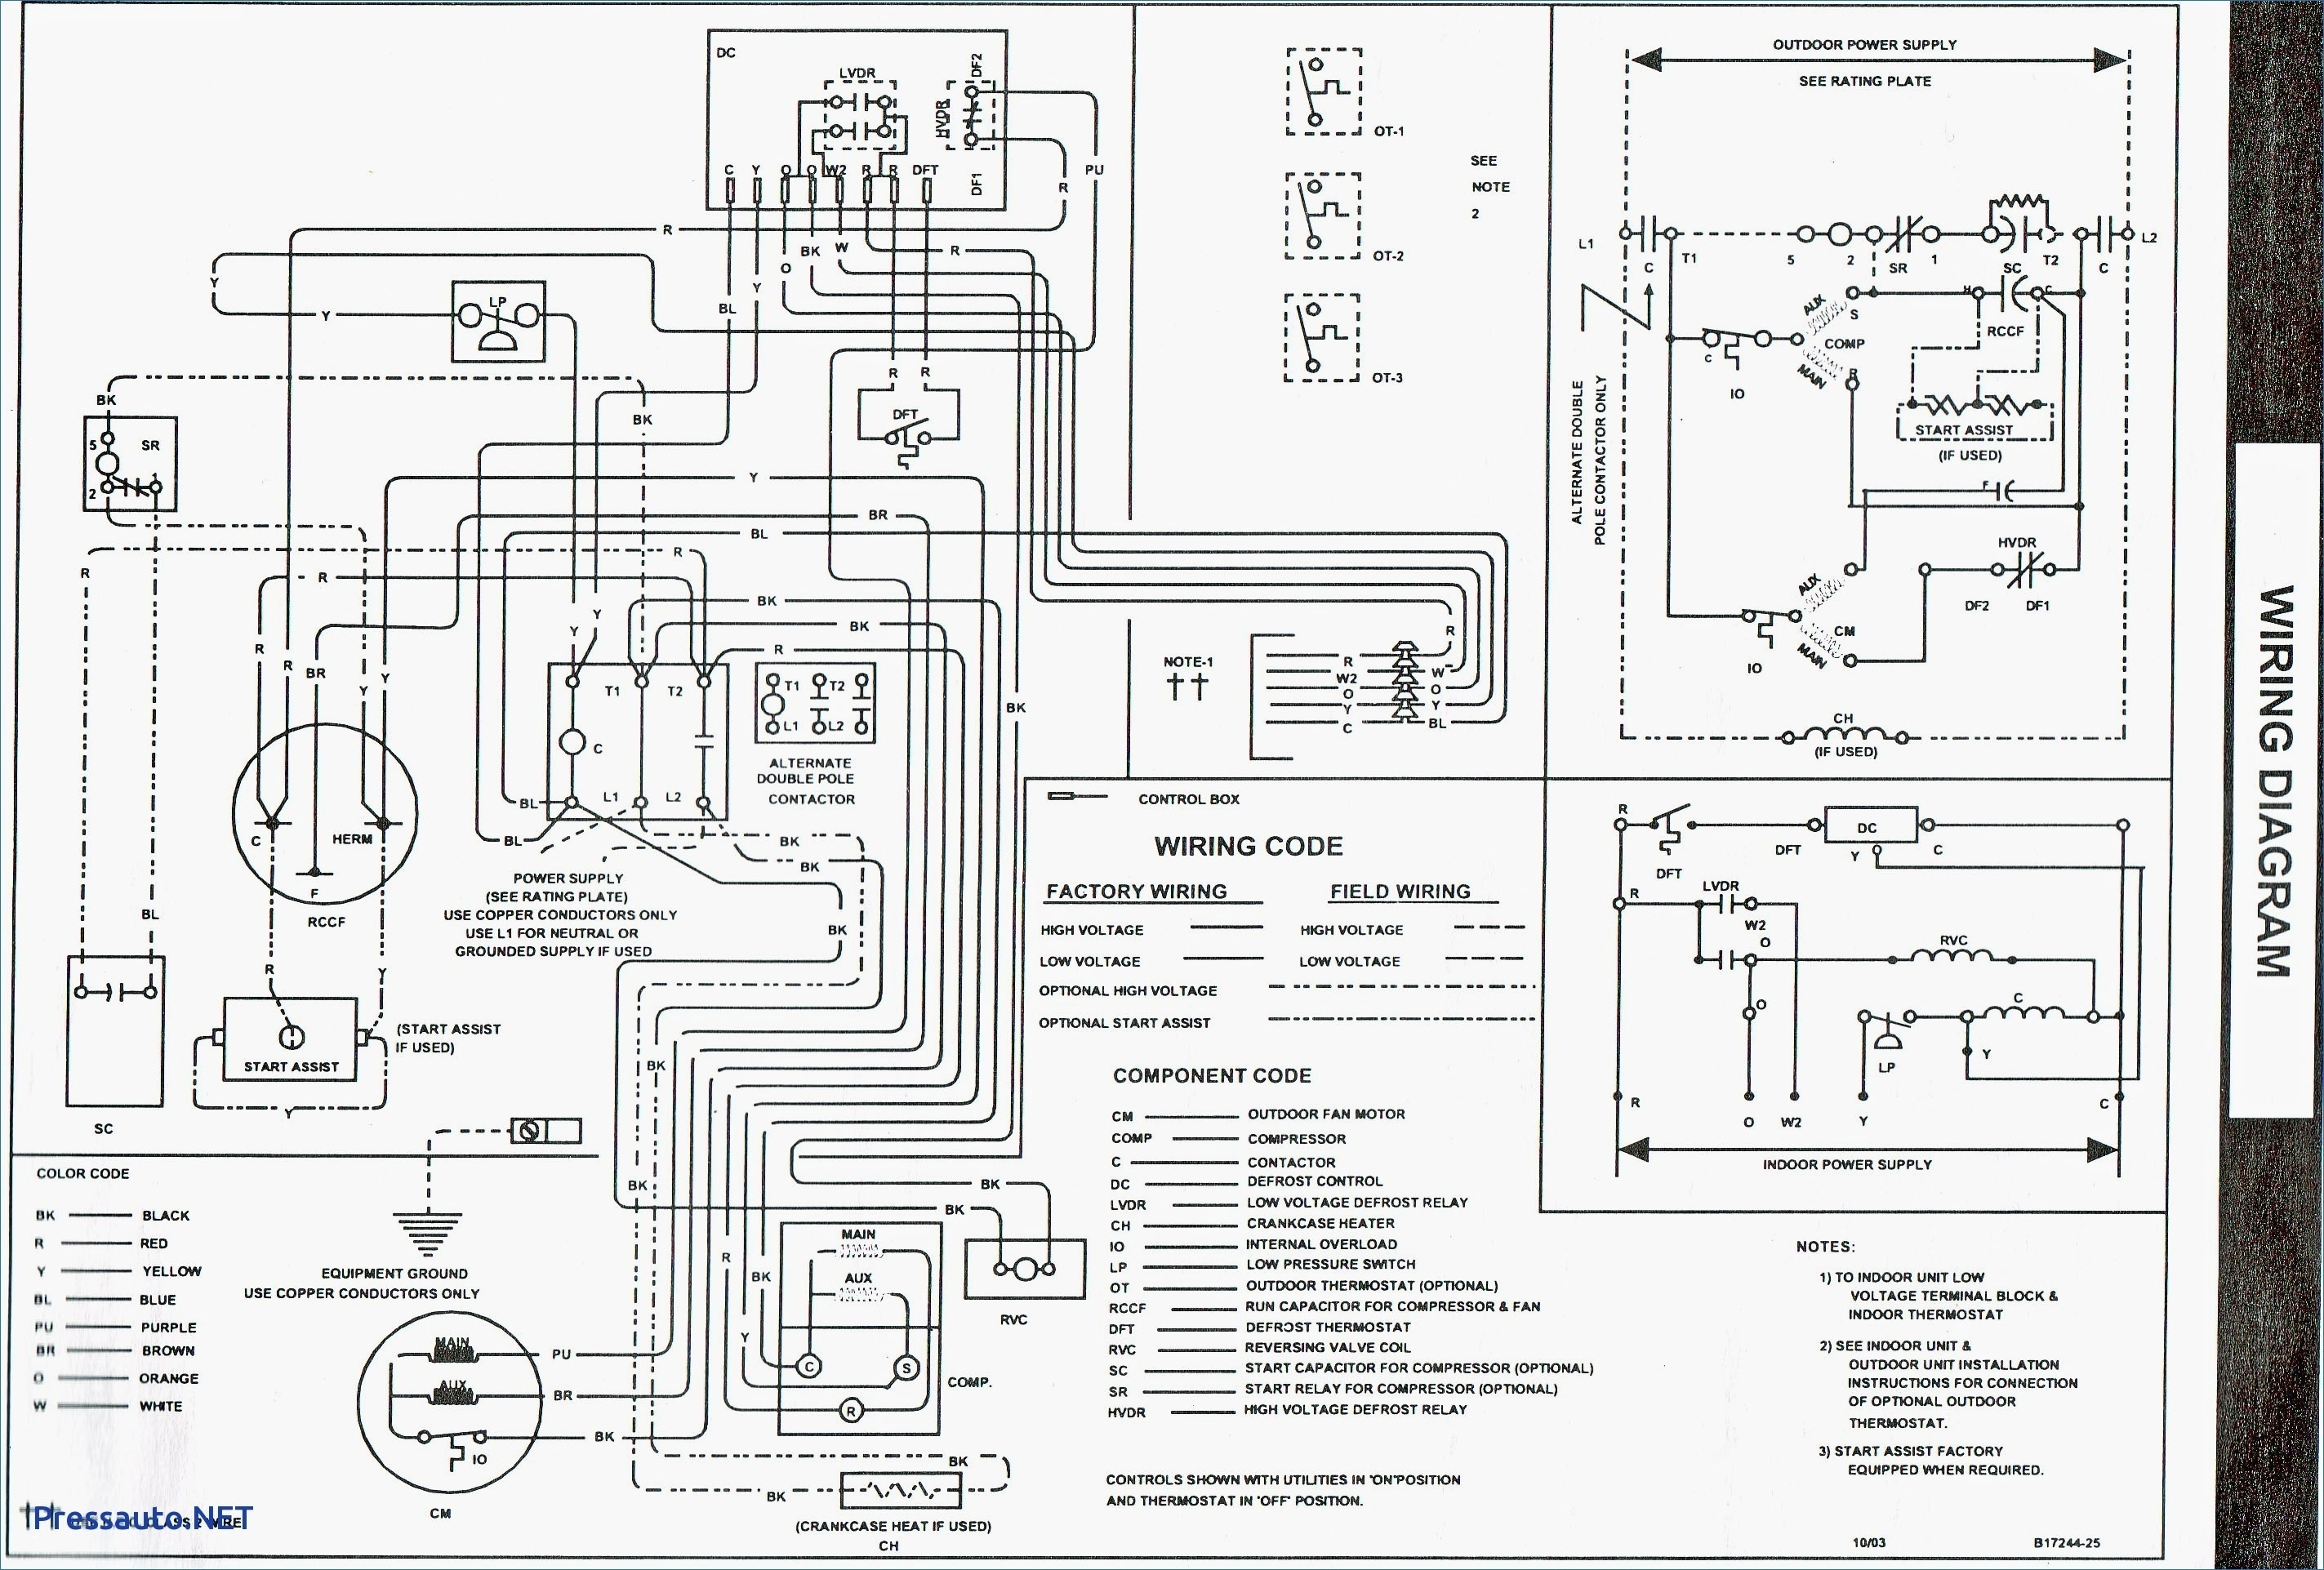 Wiring Diagram For Furnace And Ac